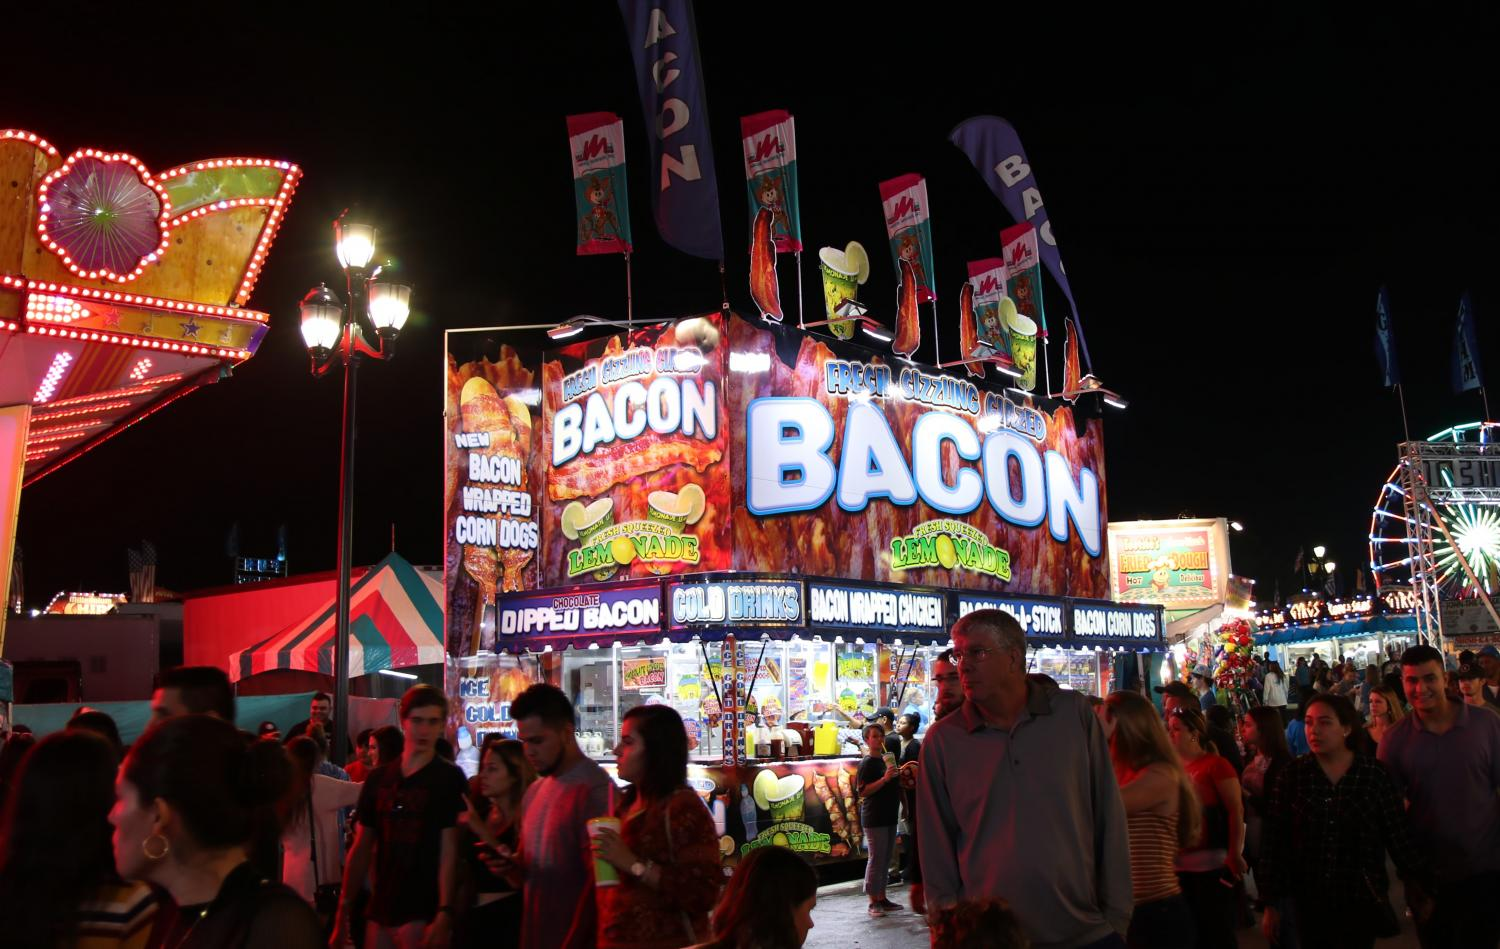 Bacon Booth at the NC State Fair